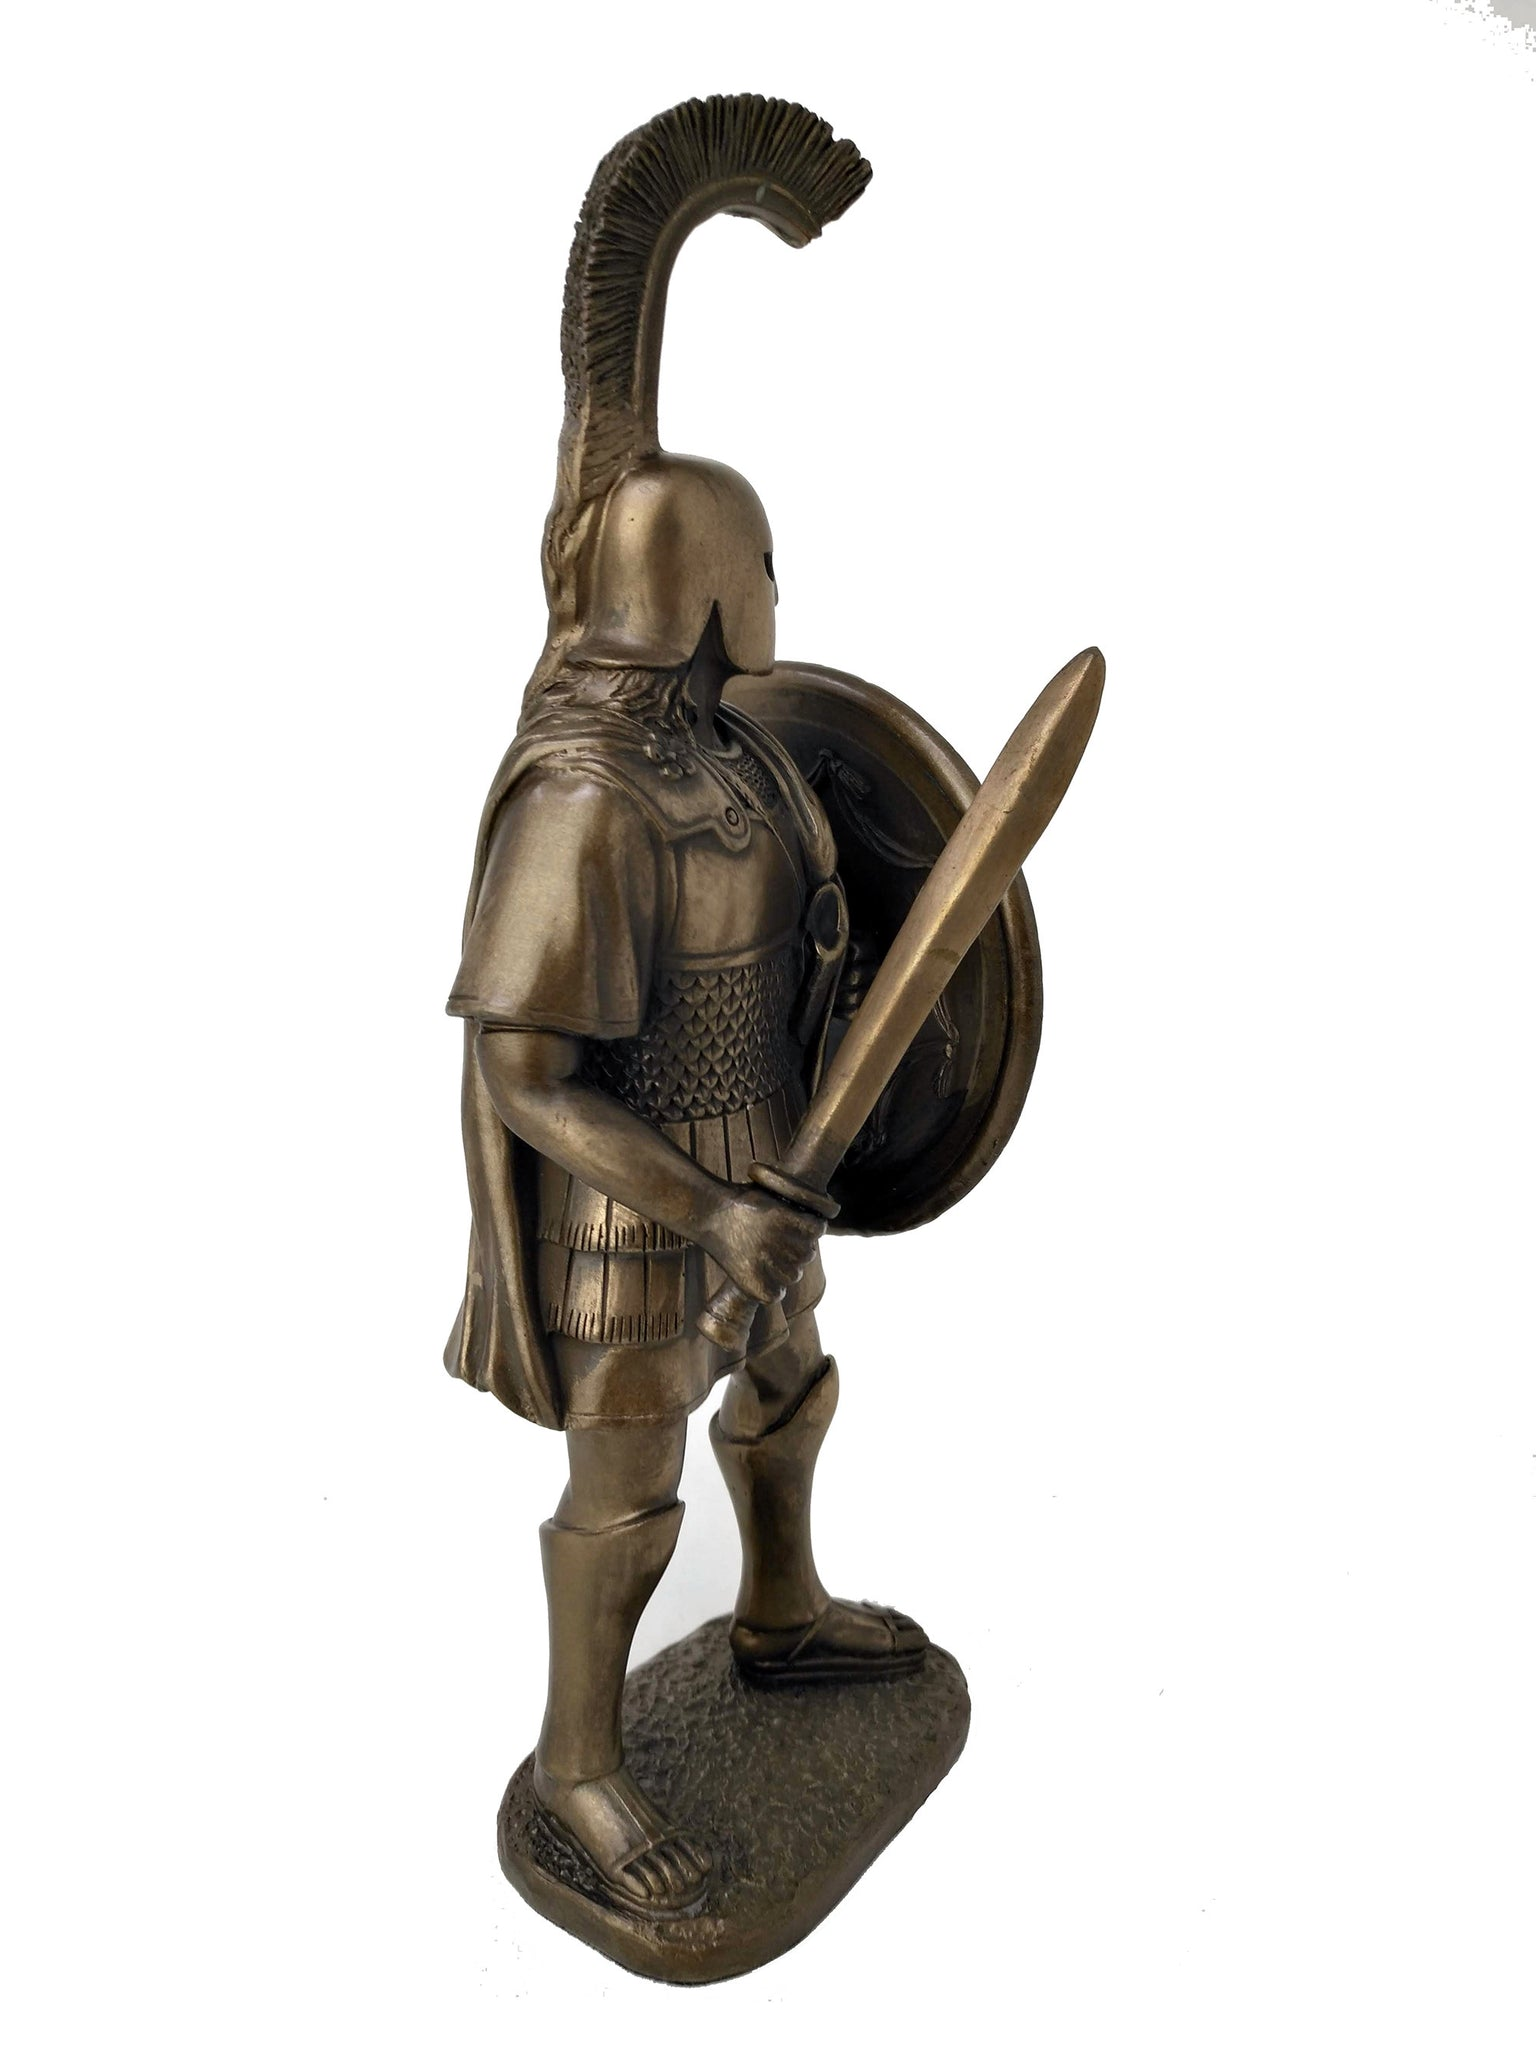 Alexander The Great Statue - King of Macedon Alexander The Great with Sword and Shield Statue - Ancient Greece 12'' / 30cm